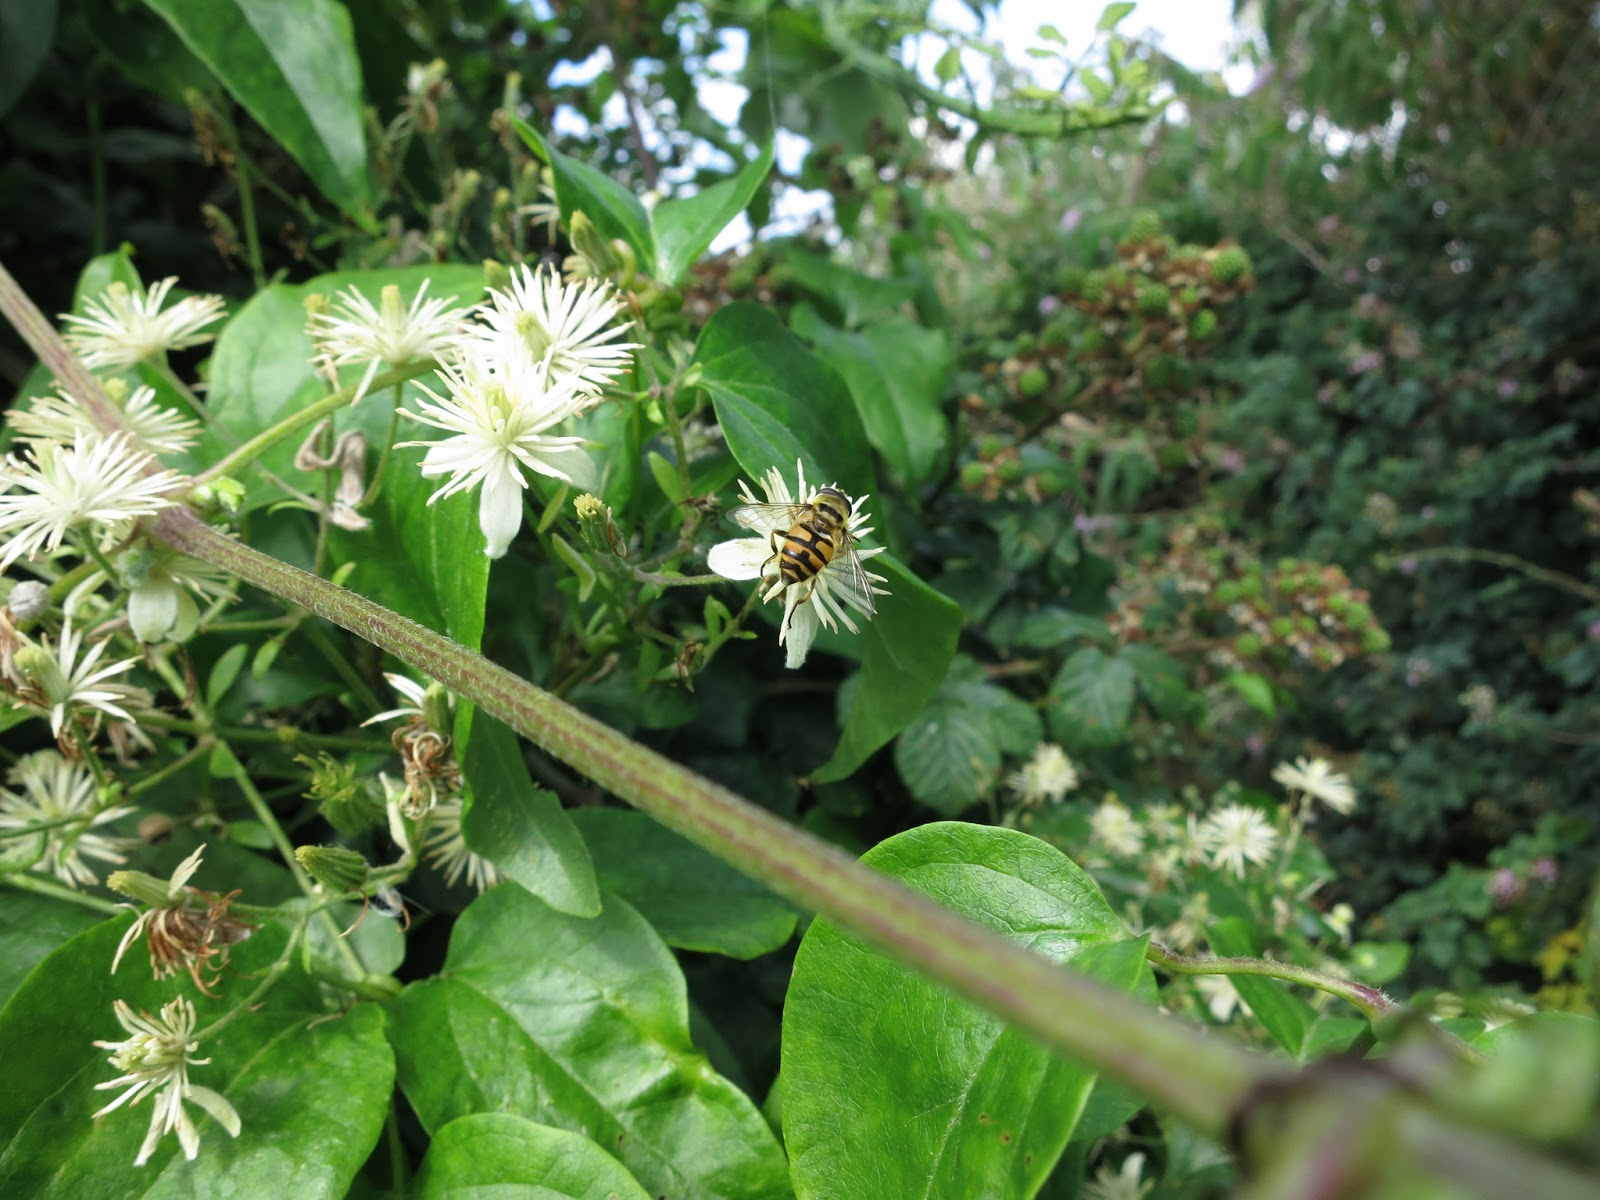 Wild Clematis flowers (Traveller's Joy) with hoverfly